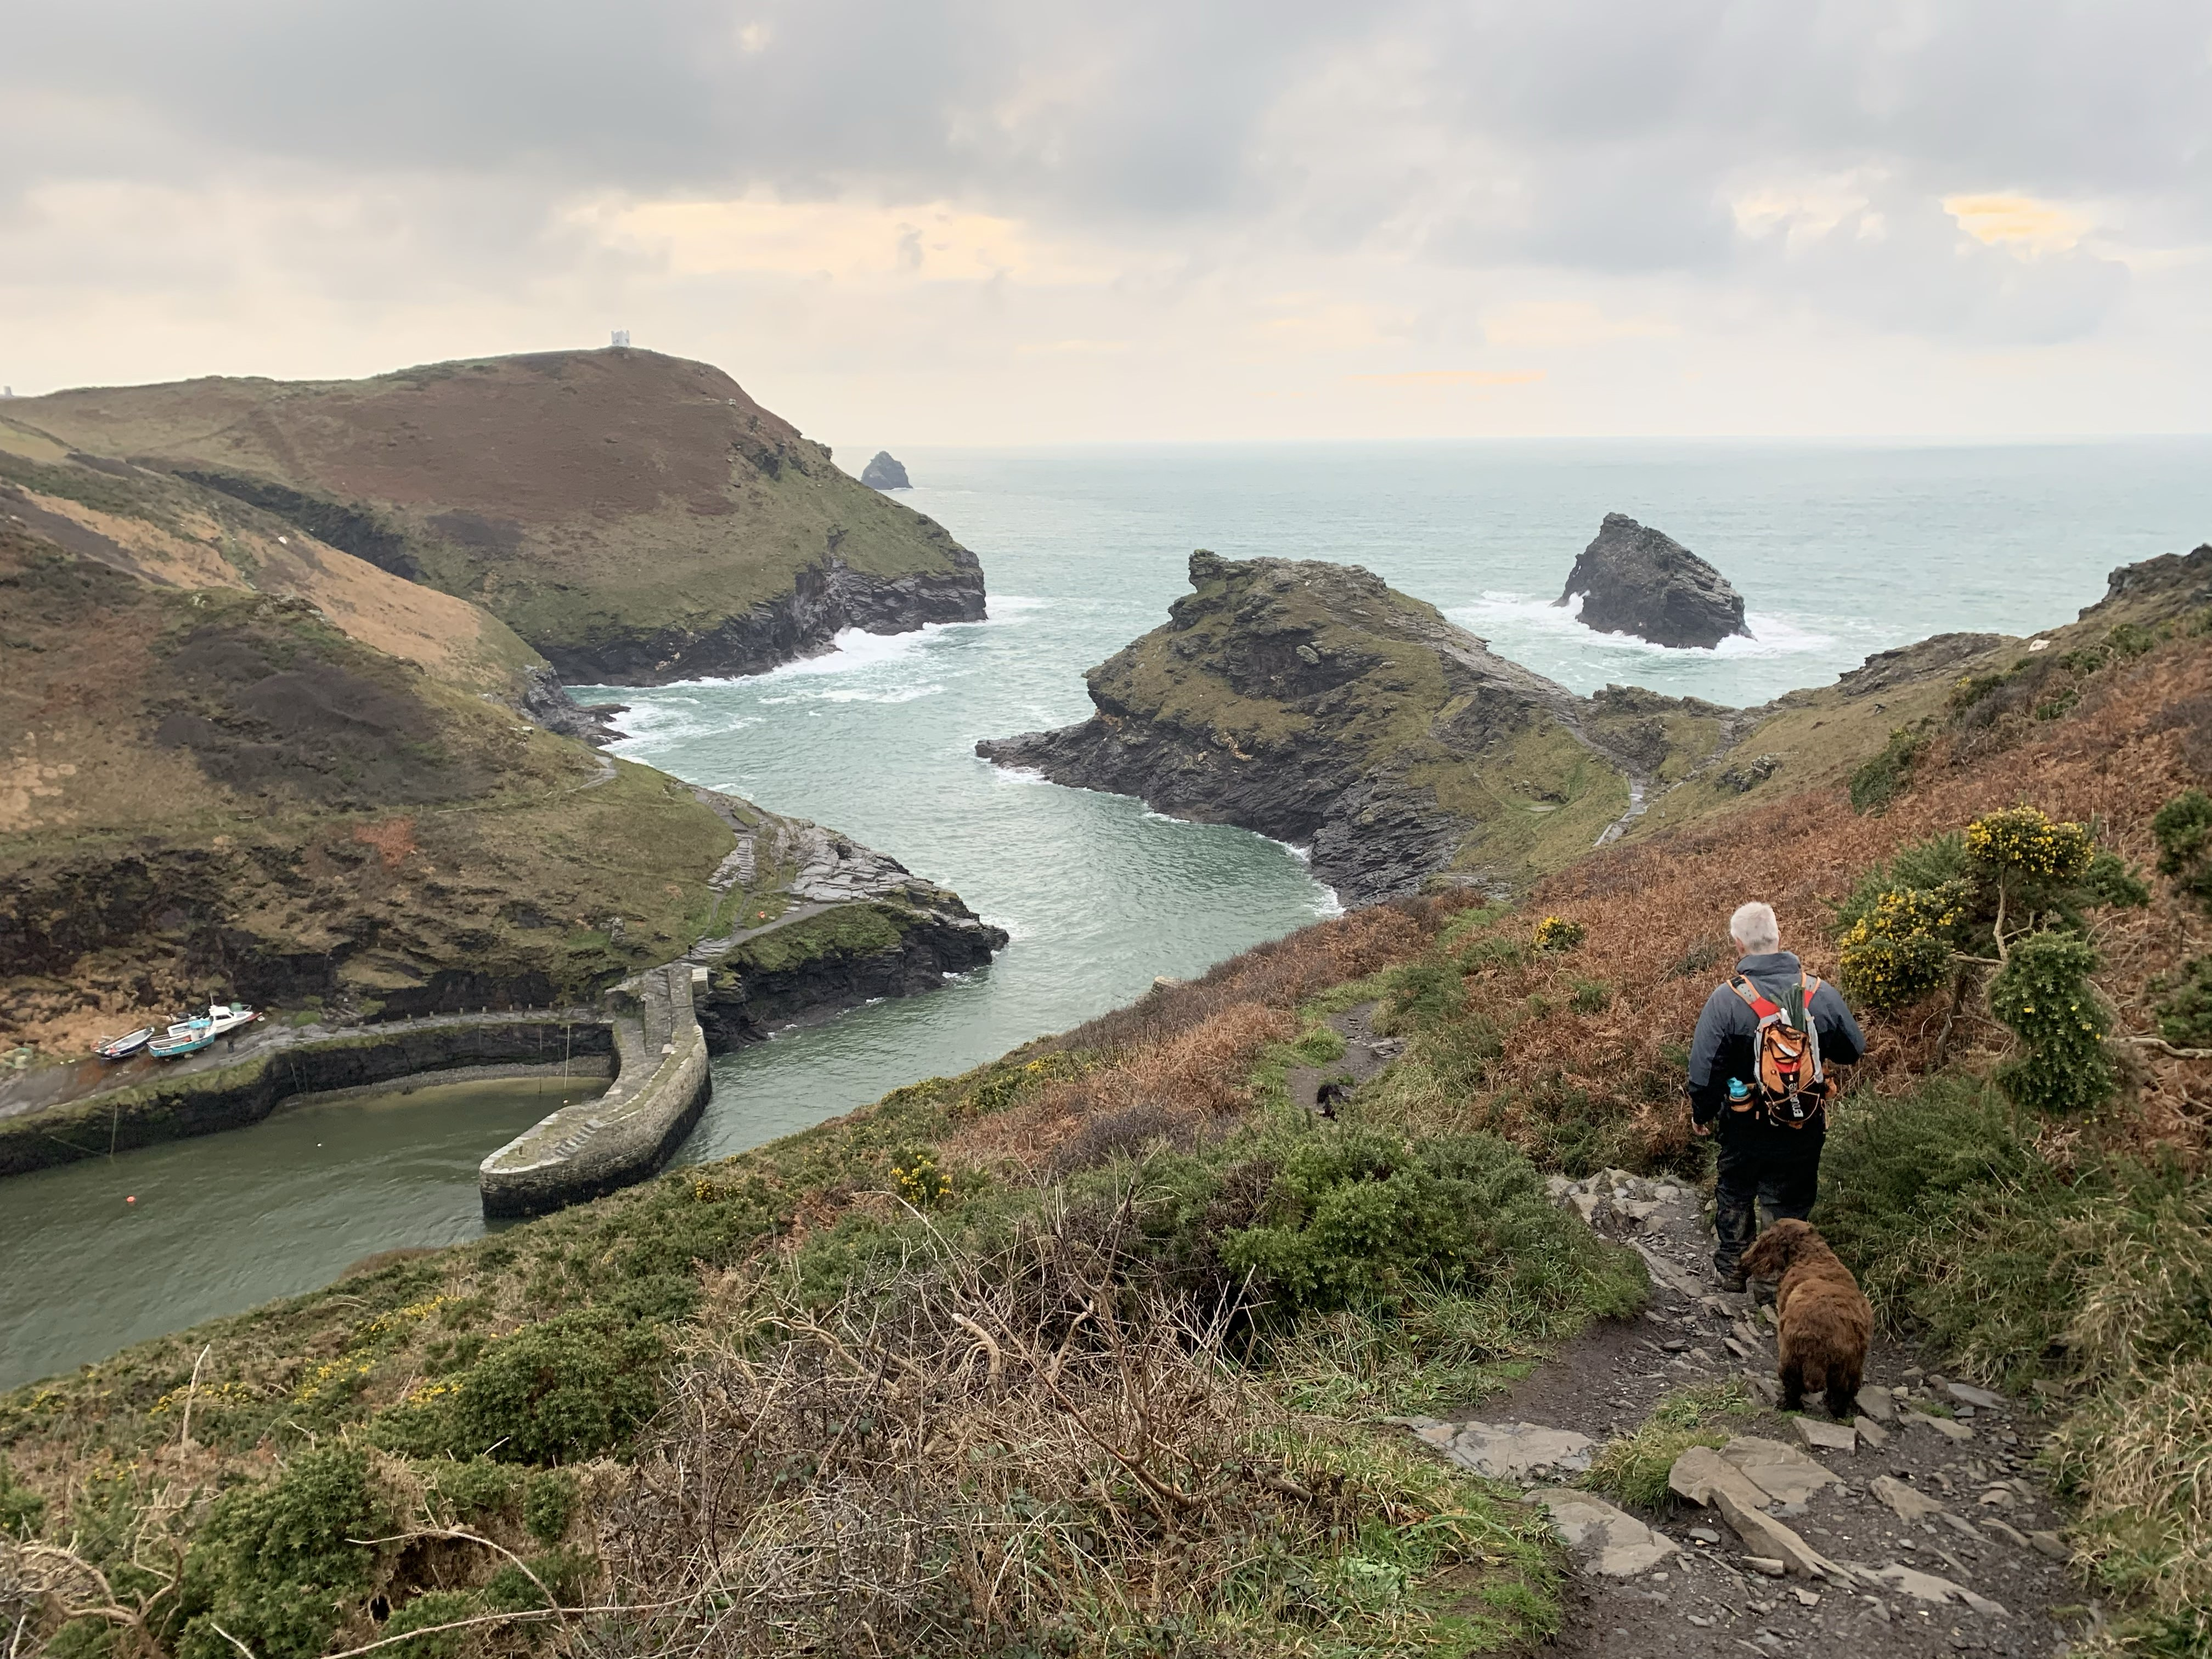 The entrance to Boscastle harbour The South West Coast Path walk from Crackington Haven to Boscastle